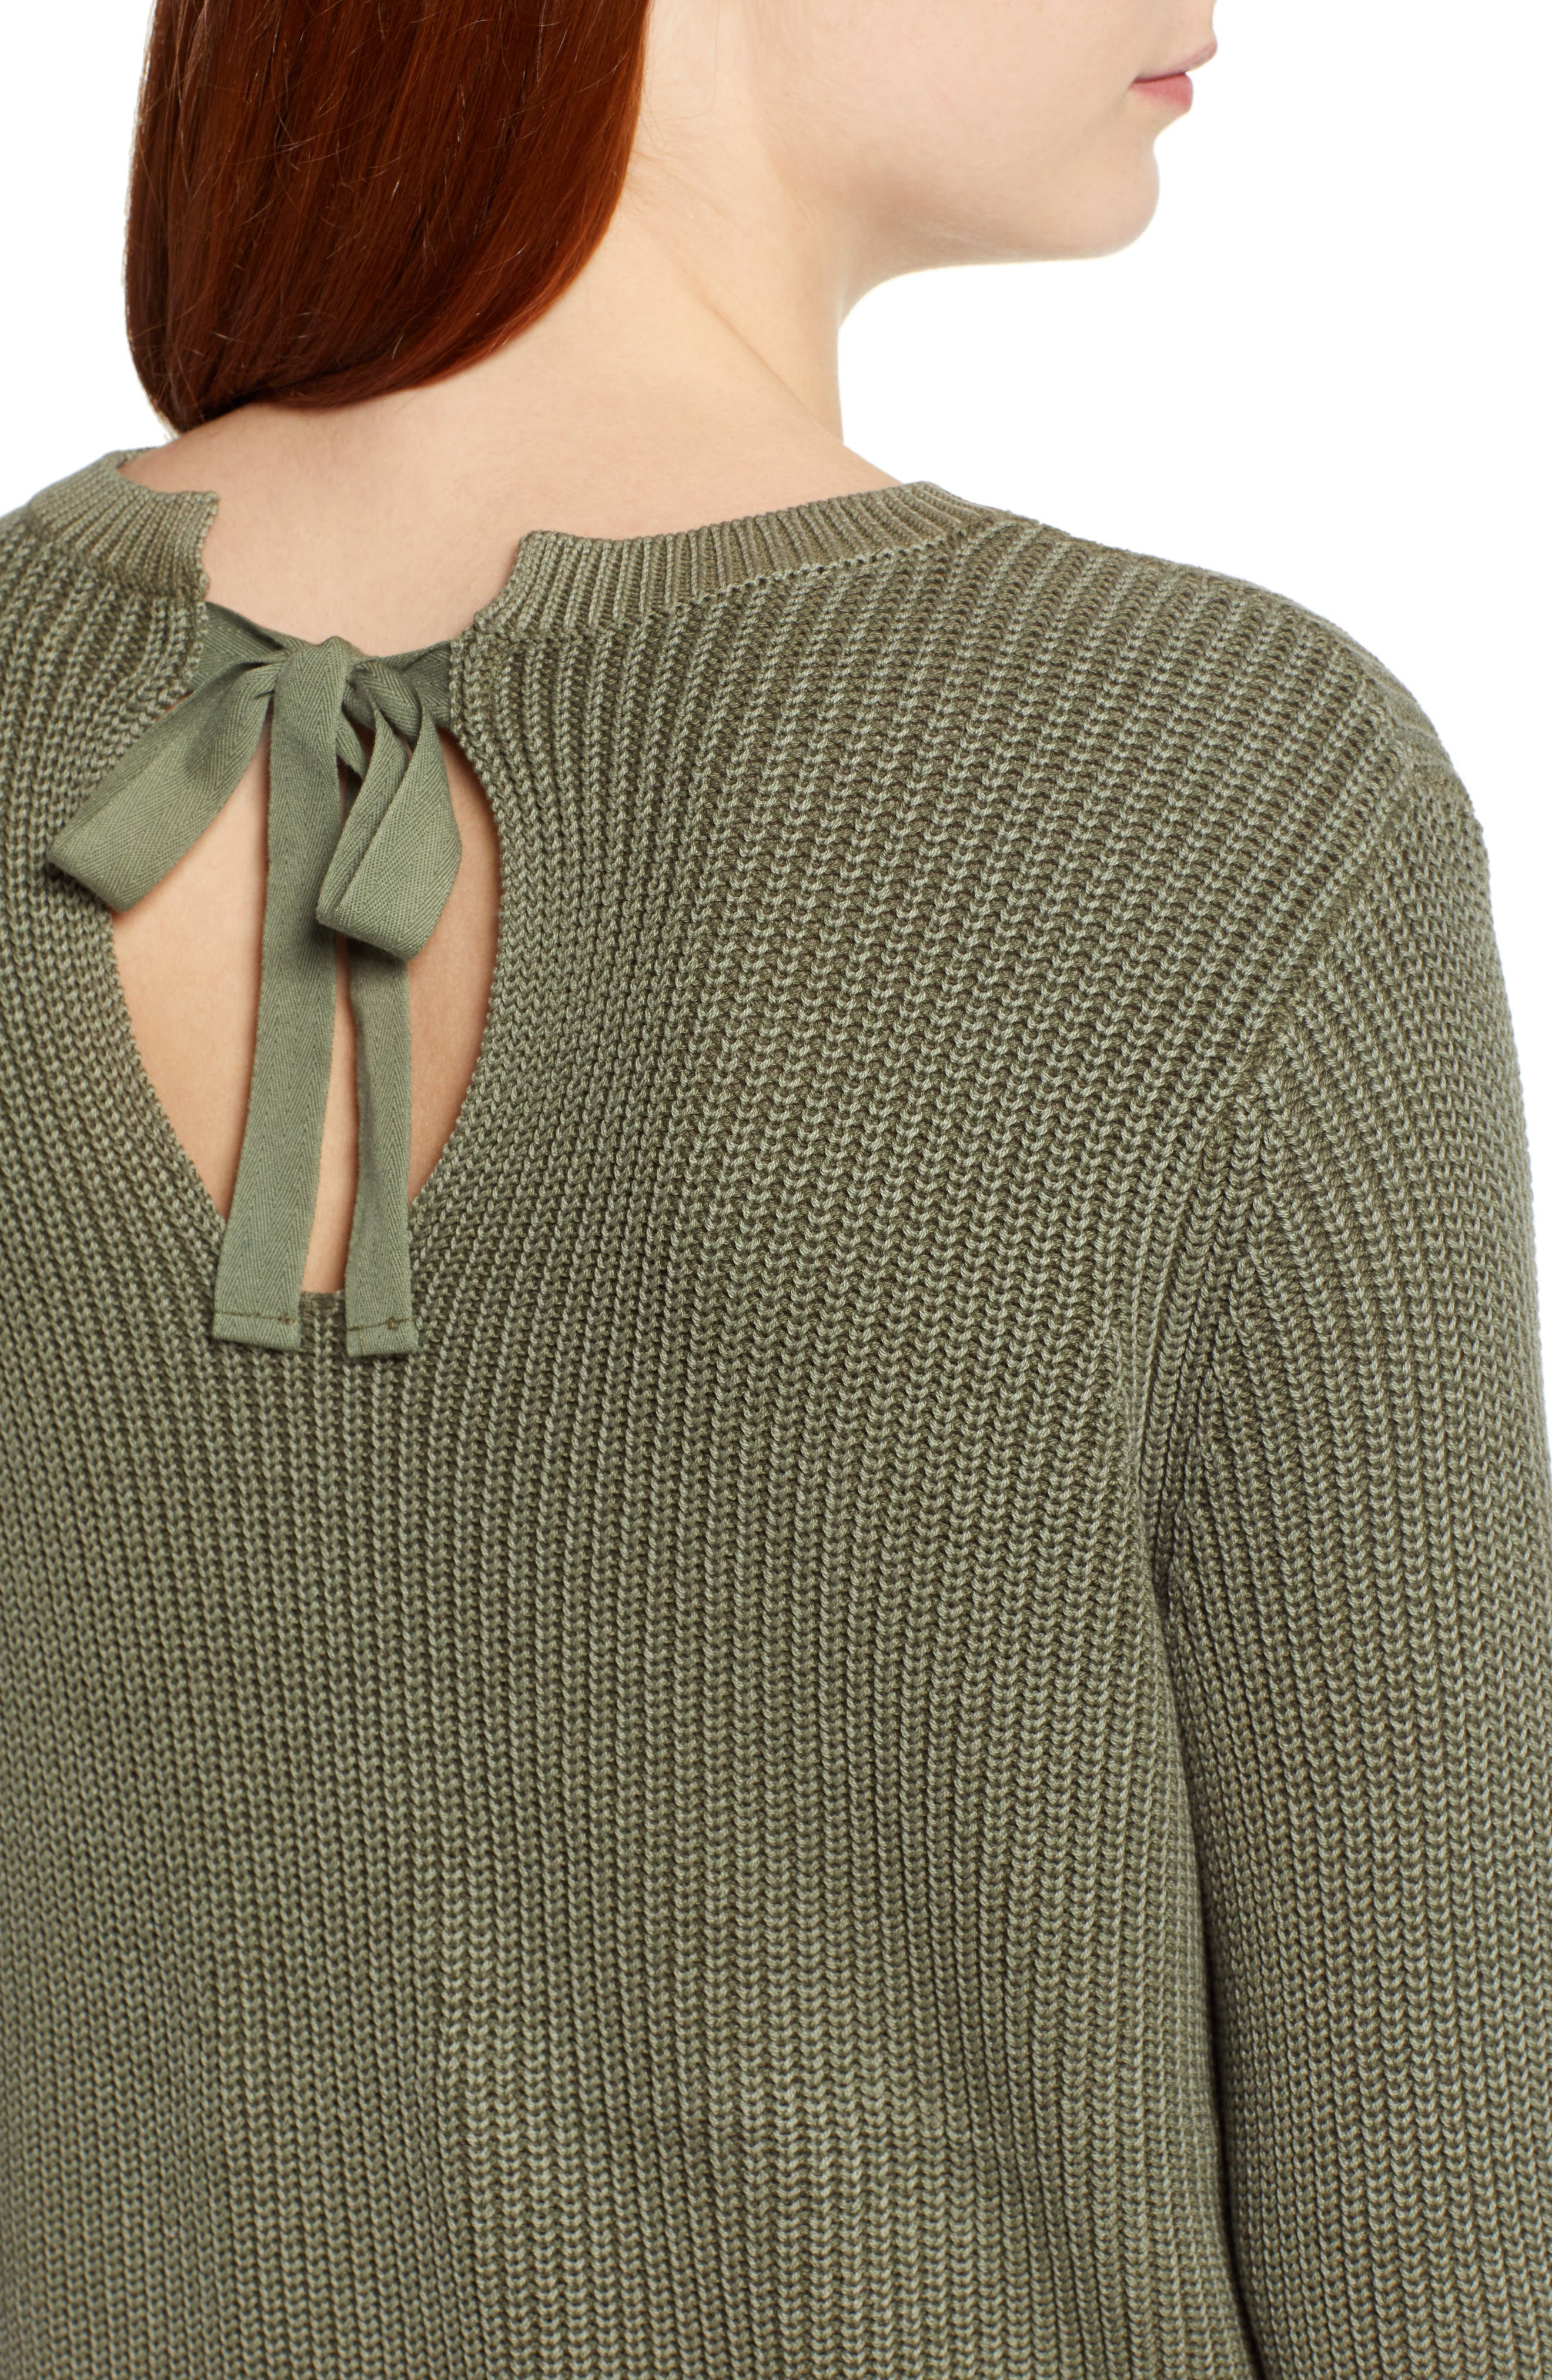 Tie Back Tunic Sweater,                             Alternate thumbnail 4, color,                             301